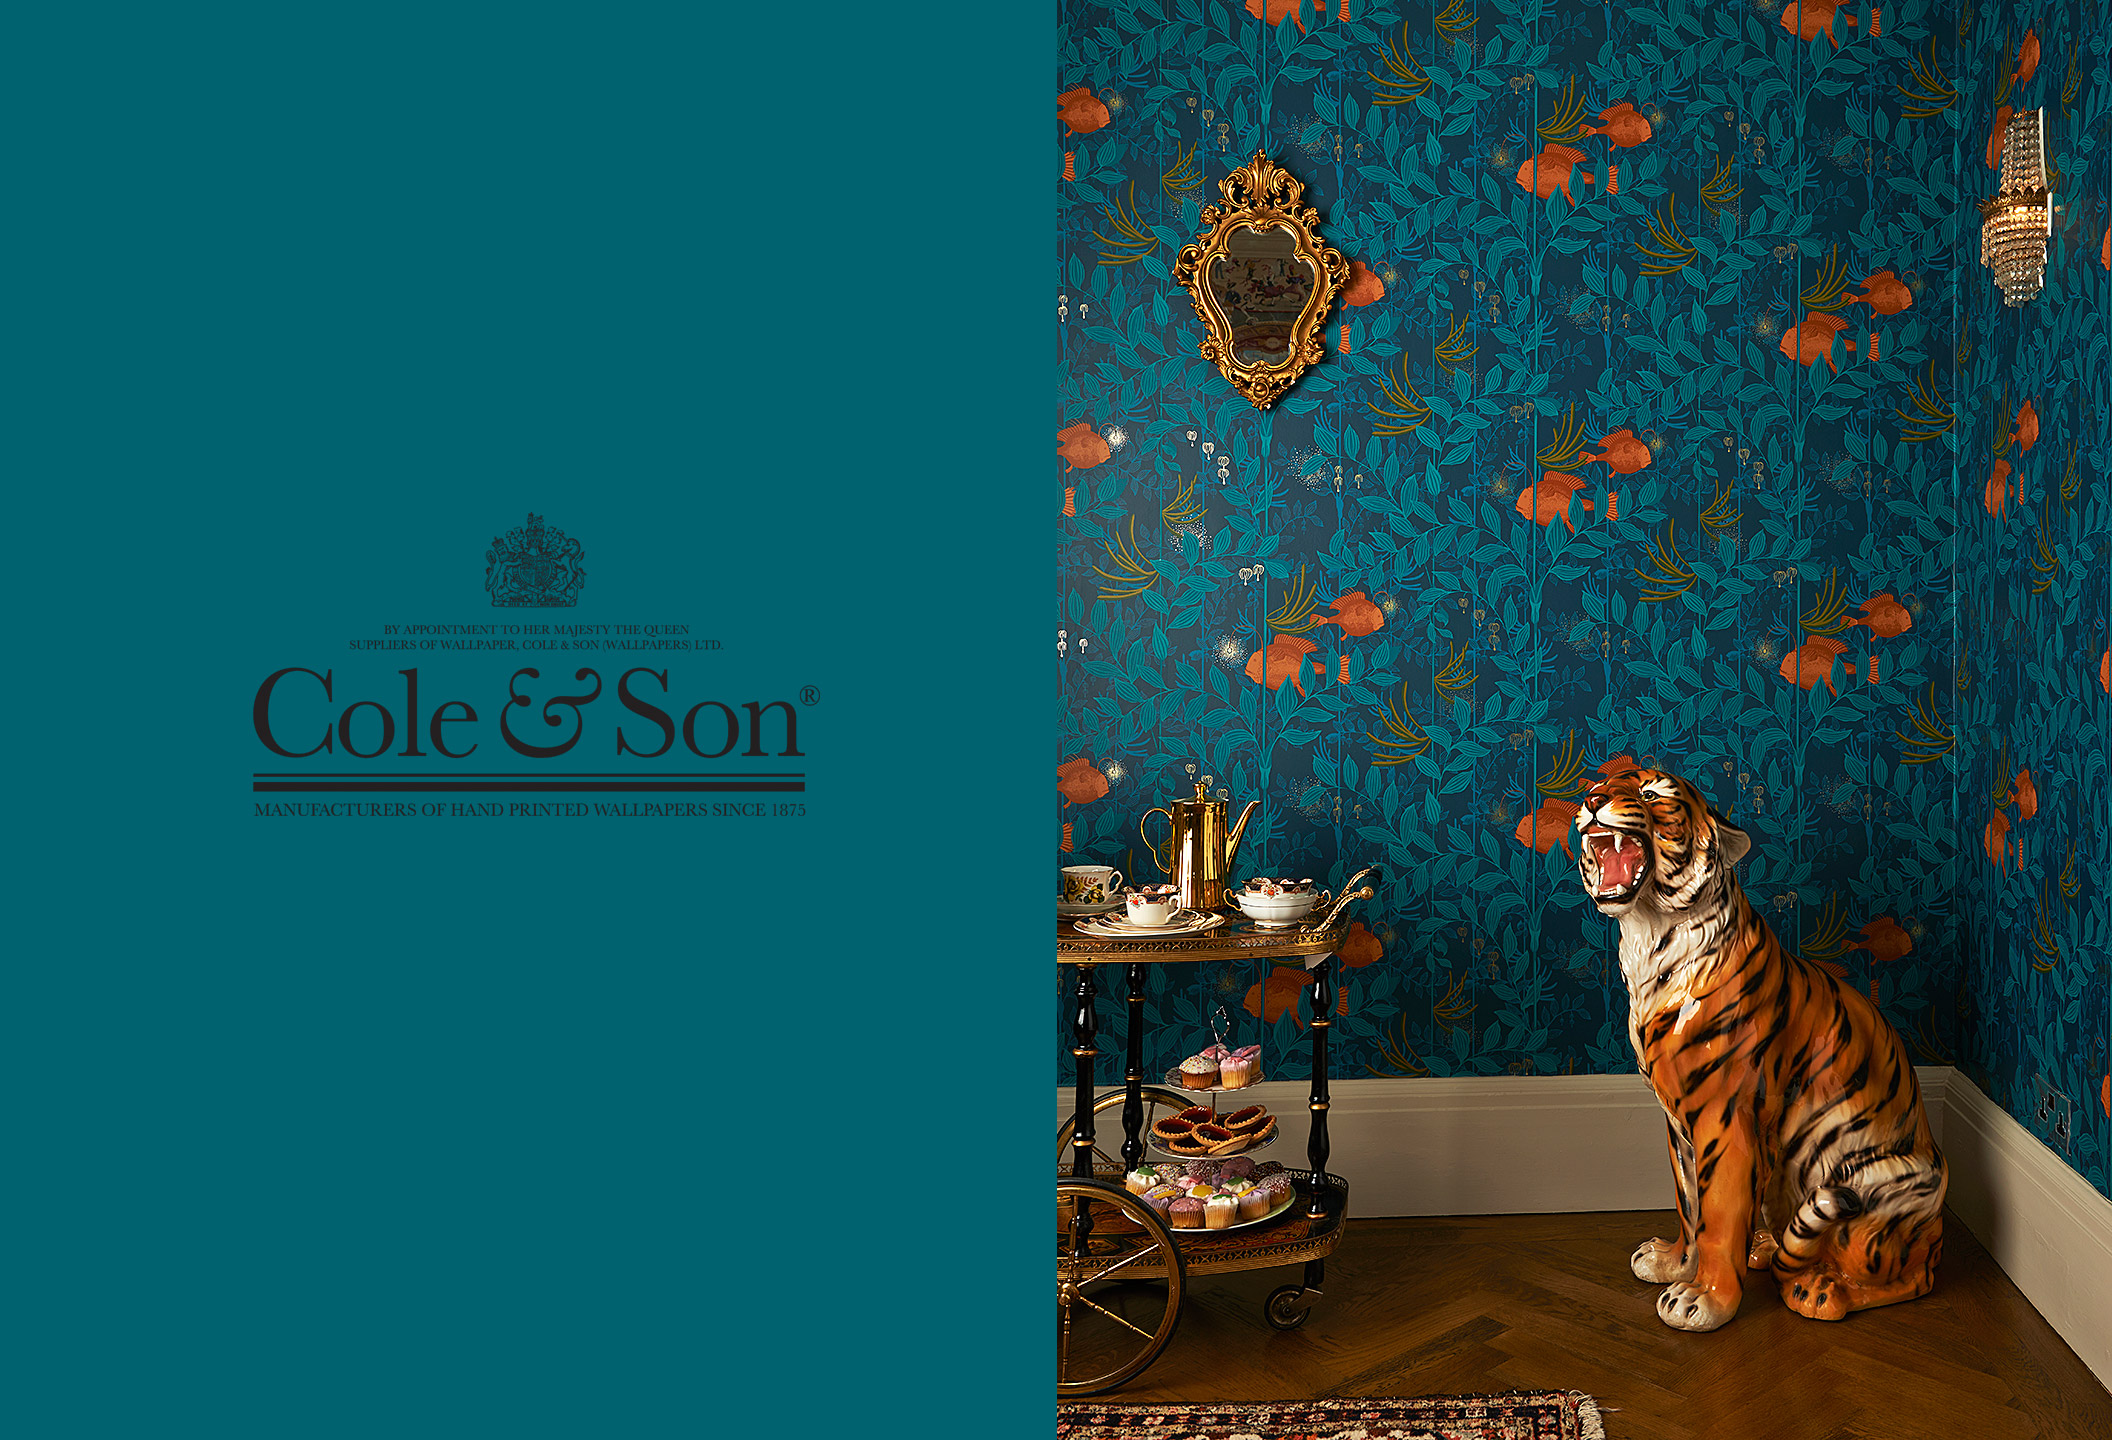 cole and son wallpaperwhite tiger wallpaper driverlayer. Black Bedroom Furniture Sets. Home Design Ideas